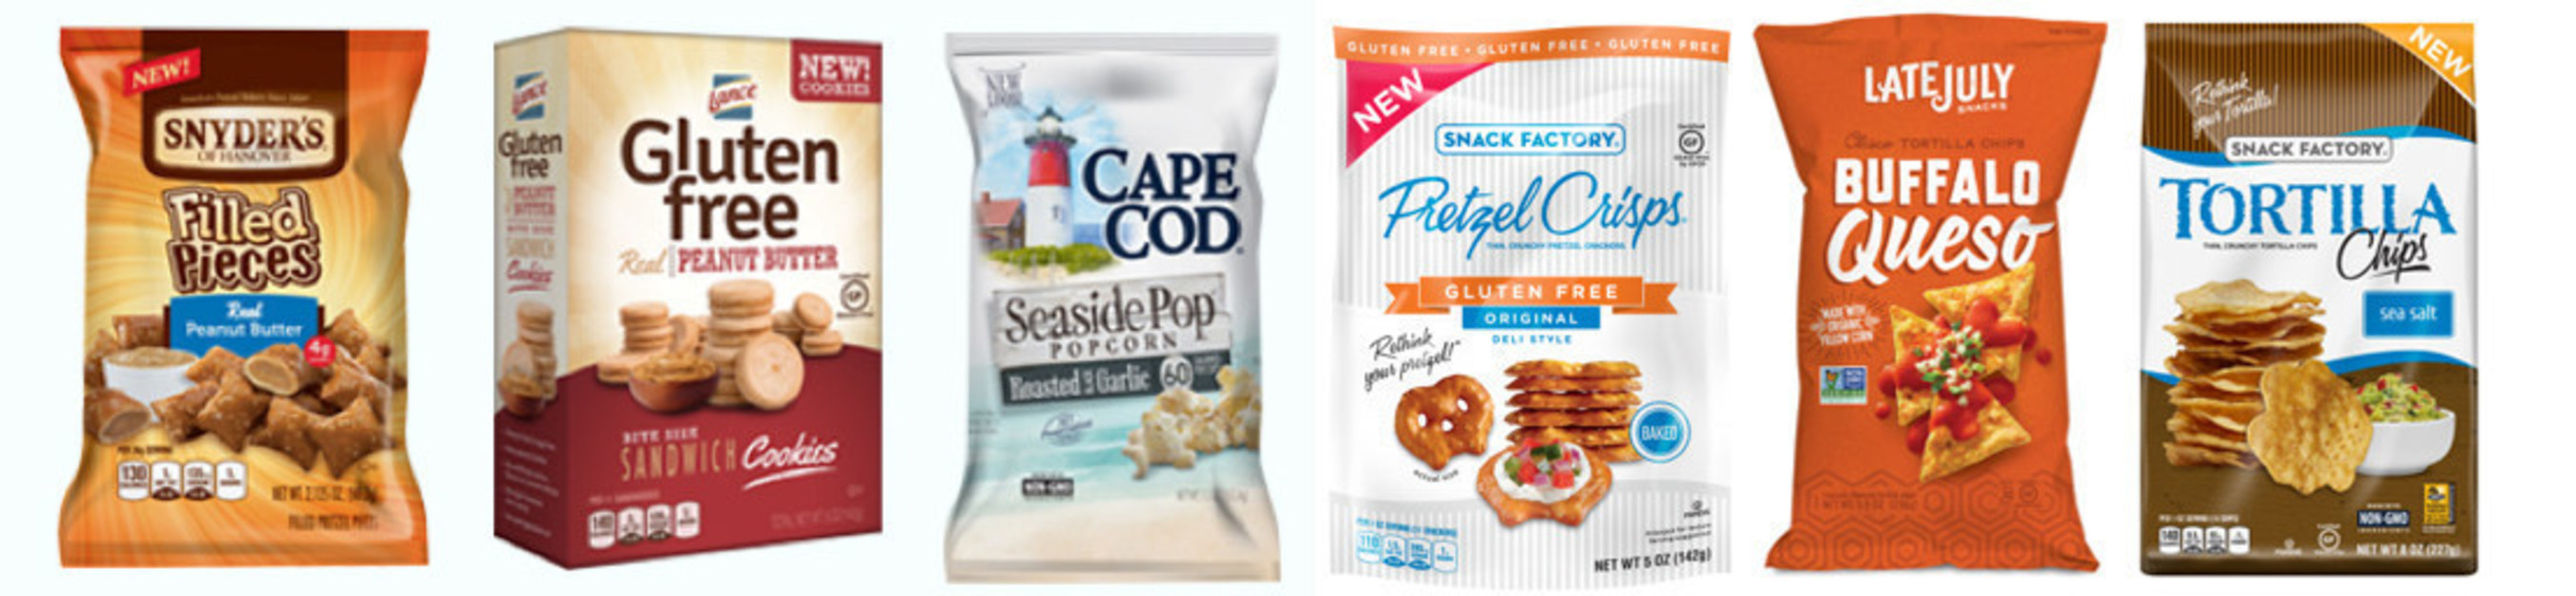 Snyder's-Lance Introduces a Variety of Innovative New Snacks Across Several Brands